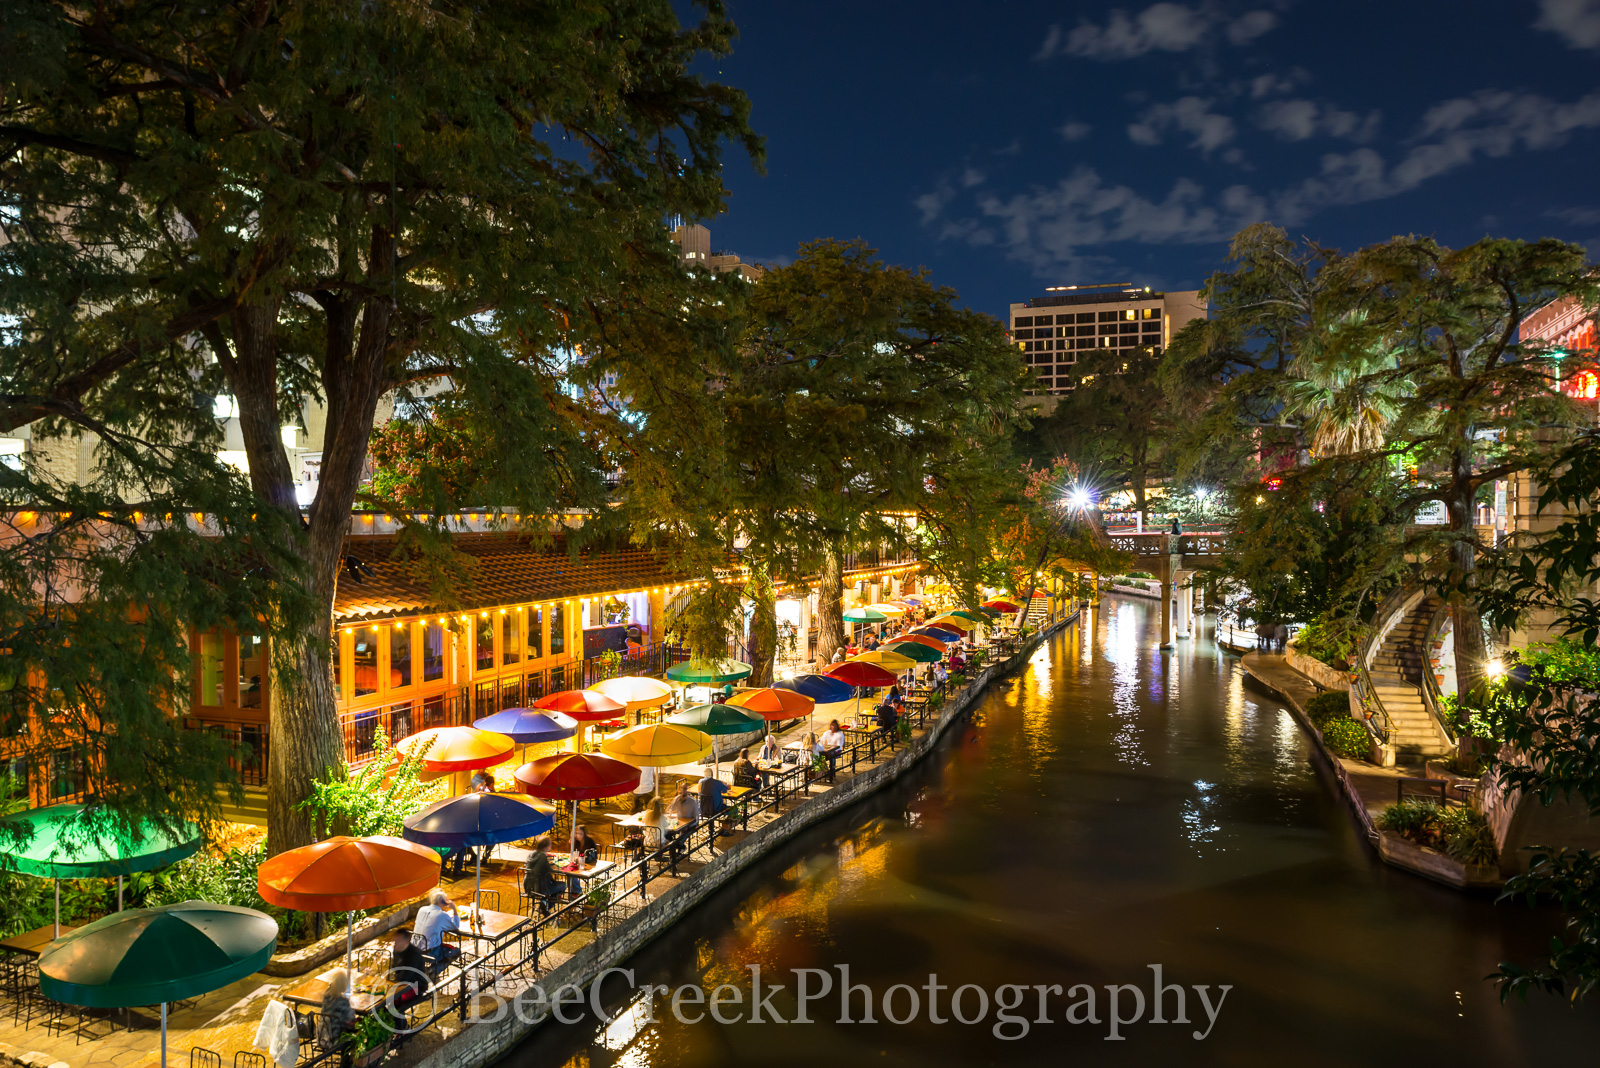 River Walk, SA, San Antonio, city, cityscape, cityscapes, colorful umbrellas, dinning, downtown, water, photo